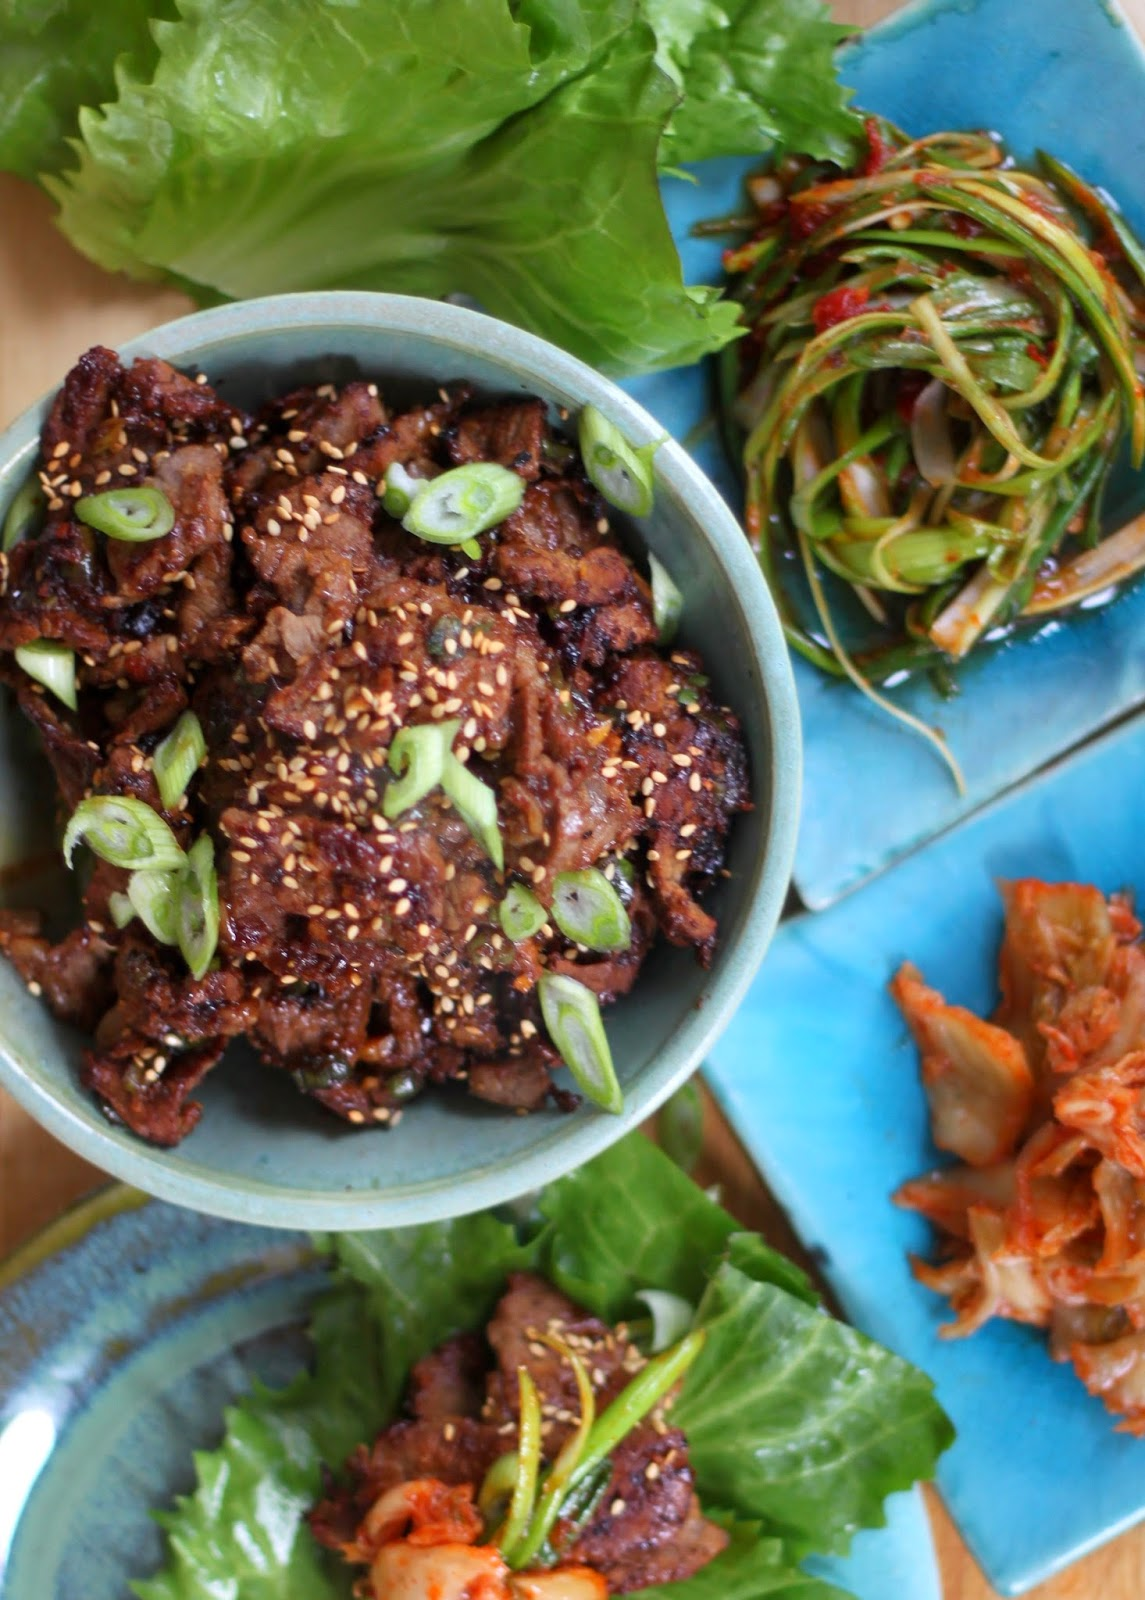 Jenessa's Dinners: Korean Barbecue Bulgogi